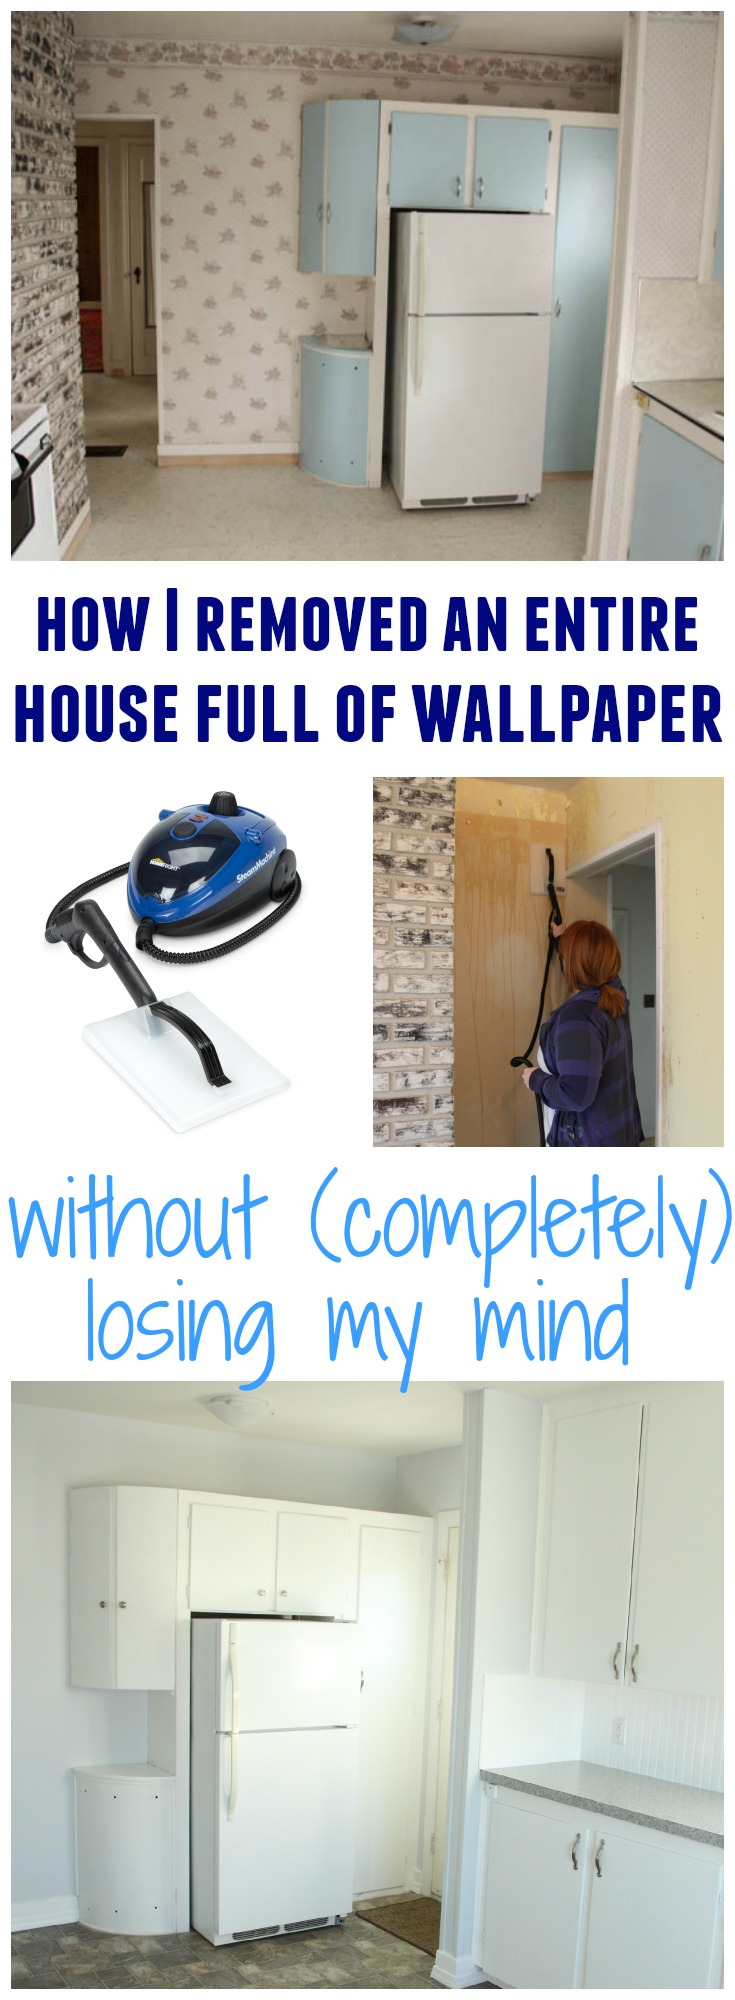 How to Remove Wallpaper Without Completely Losing Your Mind   The 735x2000